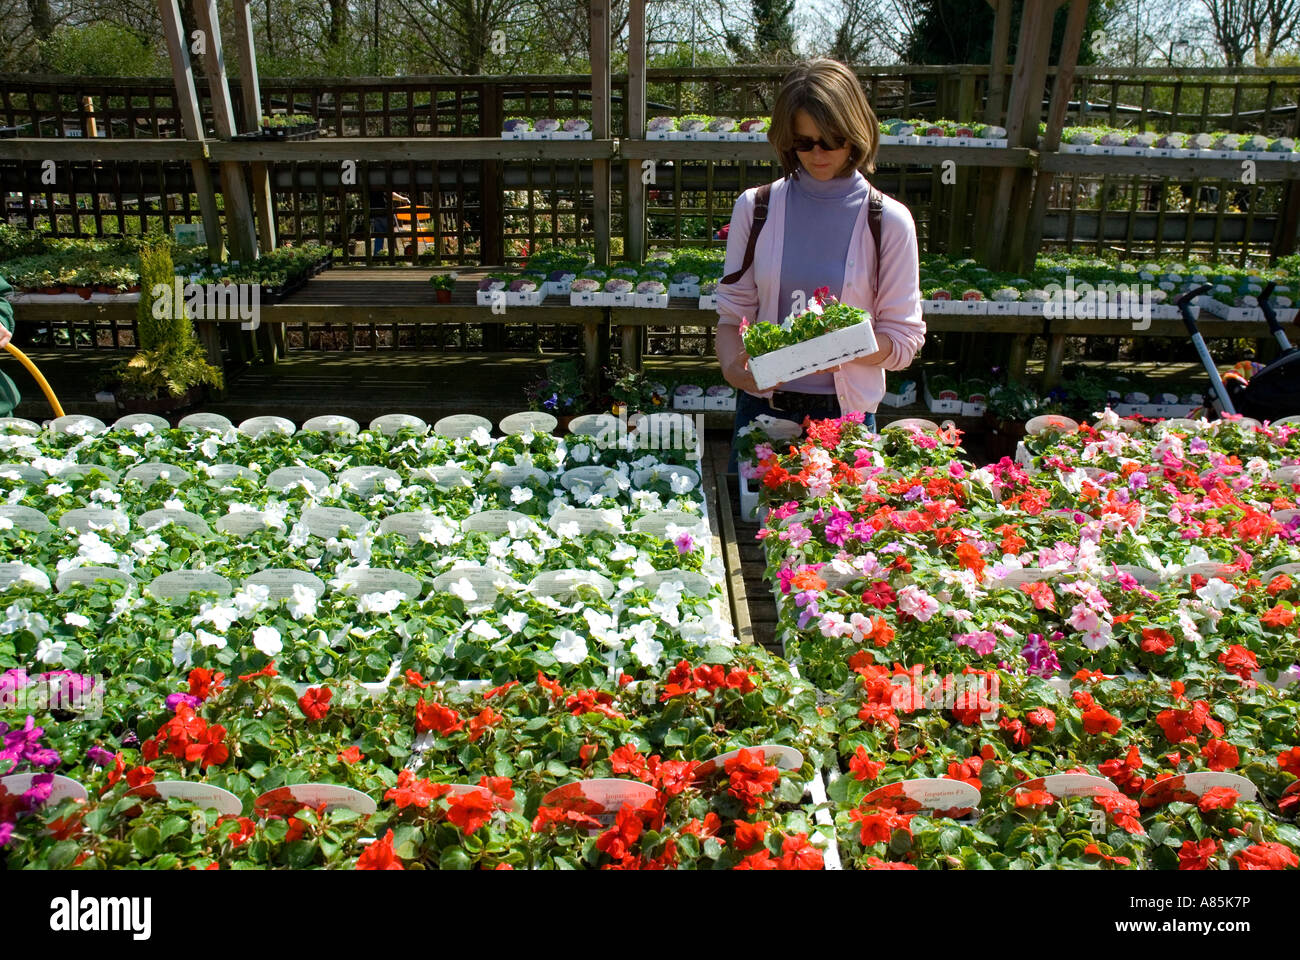 Garden Centre: Woman Choosing Bedding Plants At A London Garden Centre